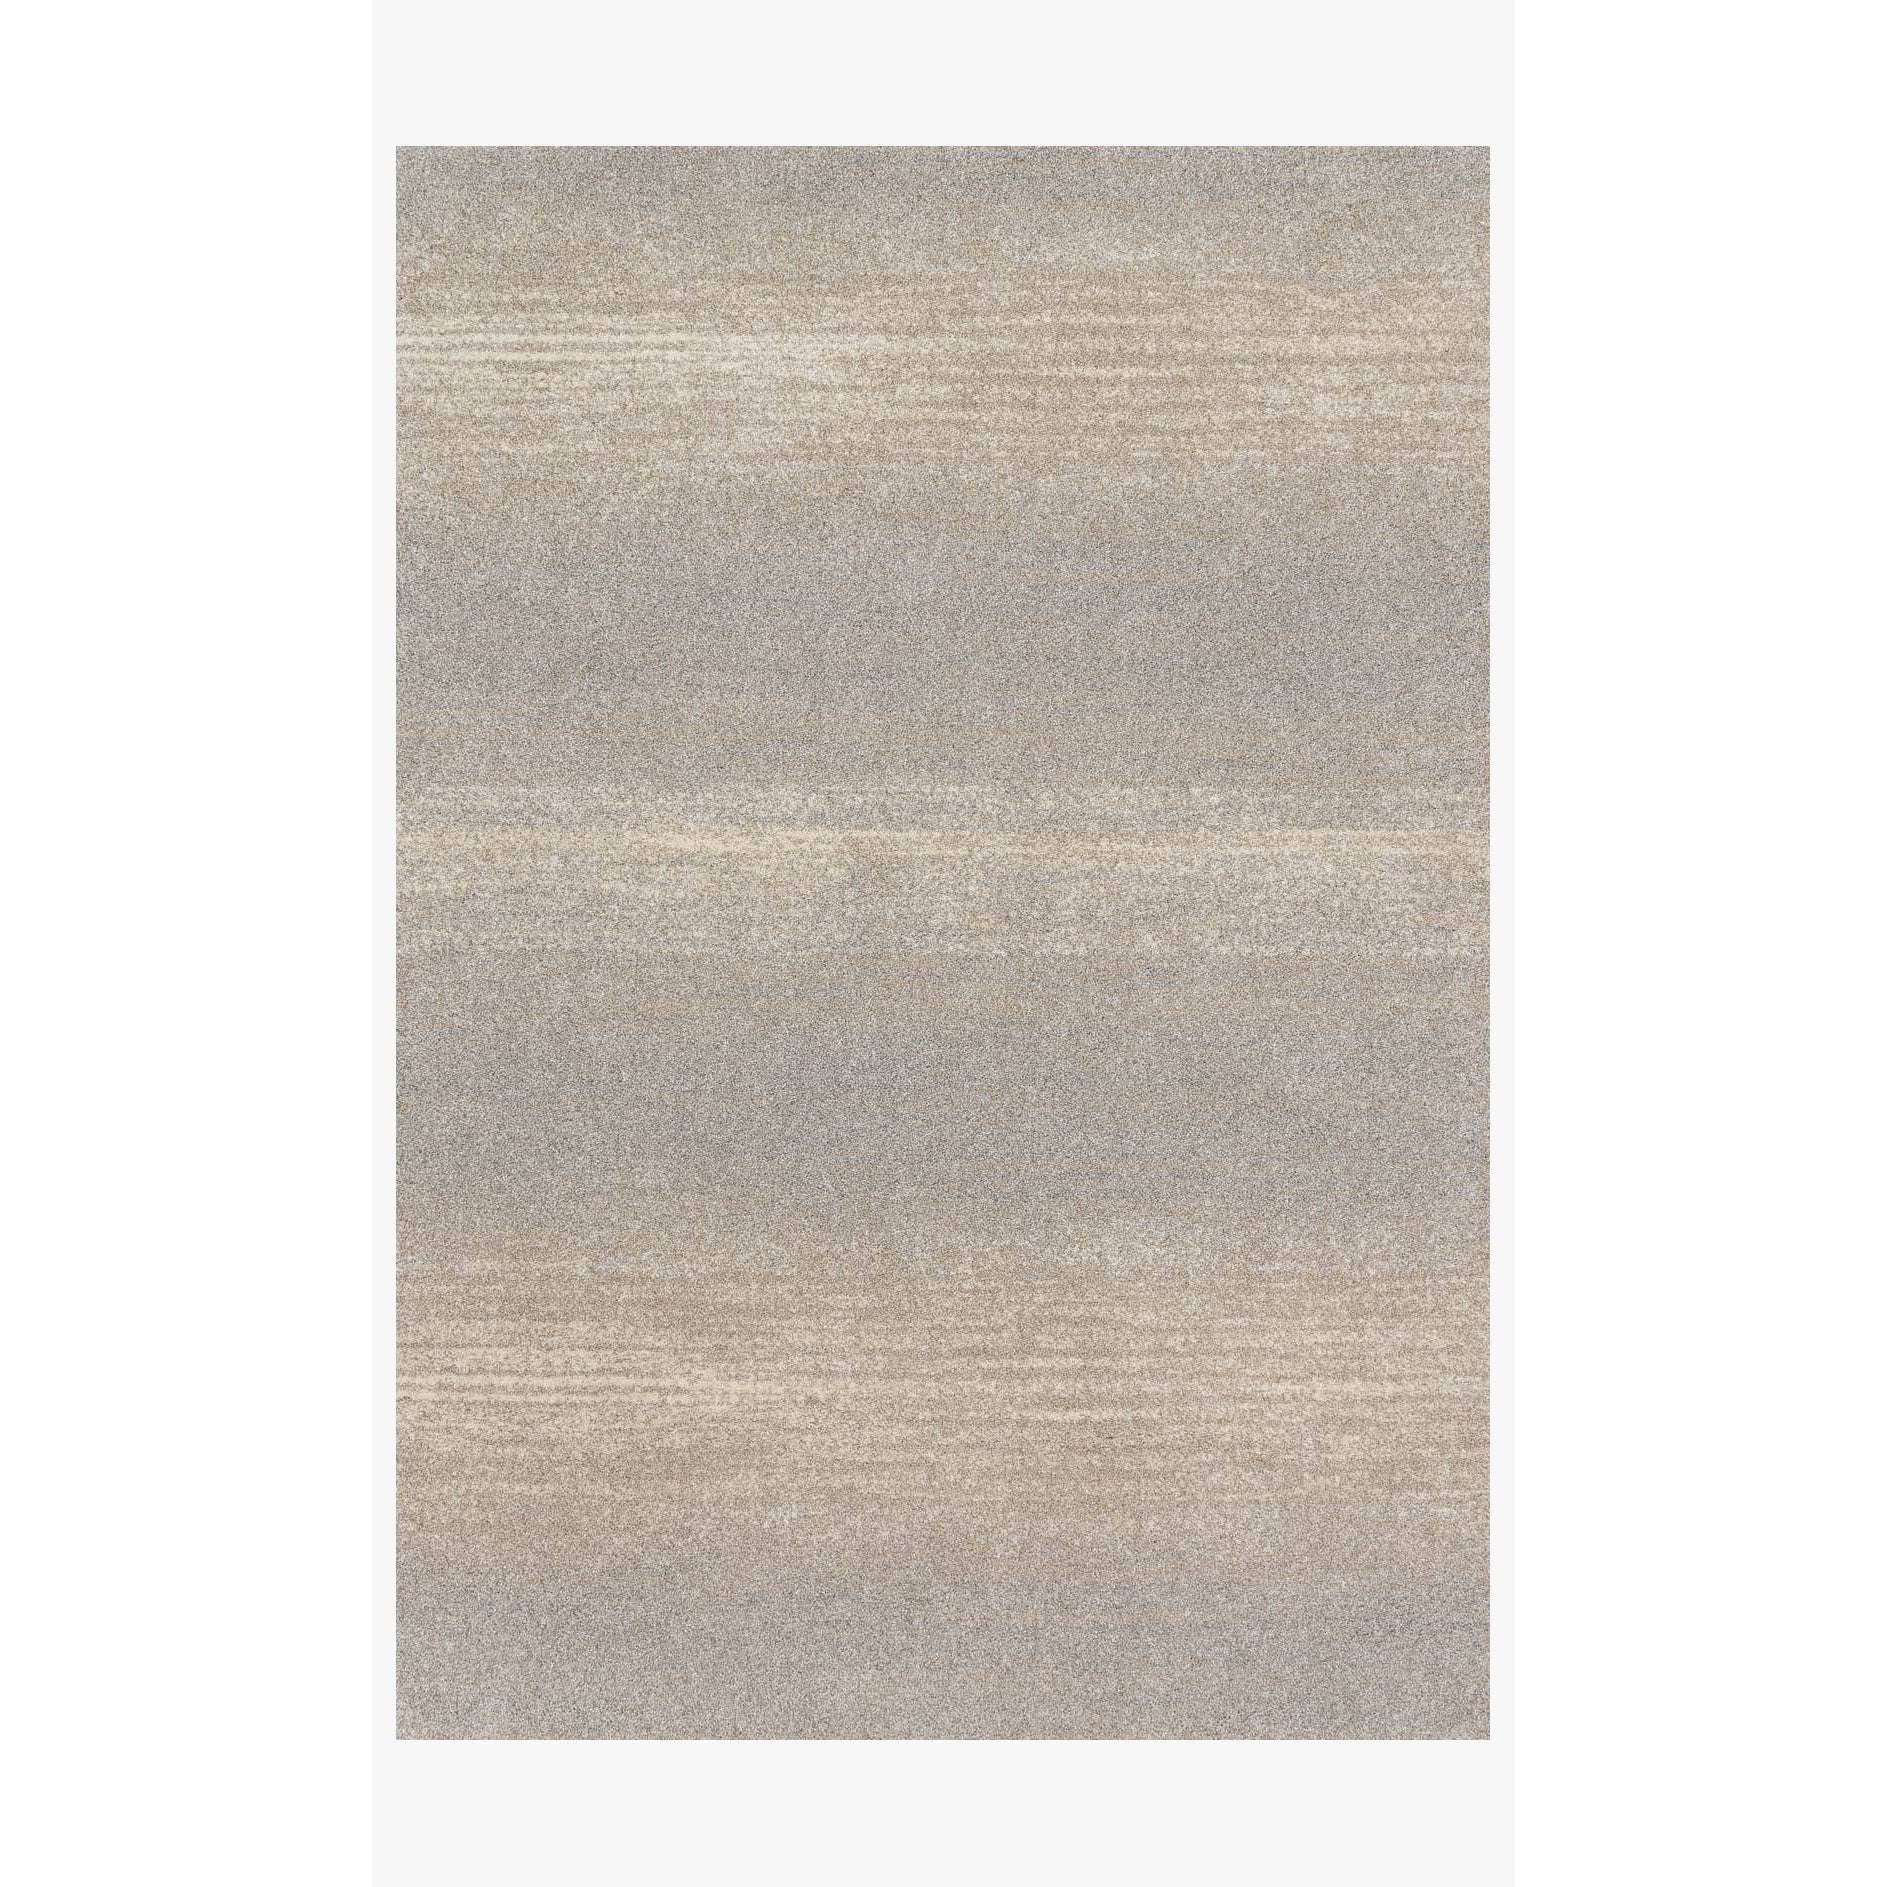 Emory Rug by Loloi Rugs - EB-03 - Silver